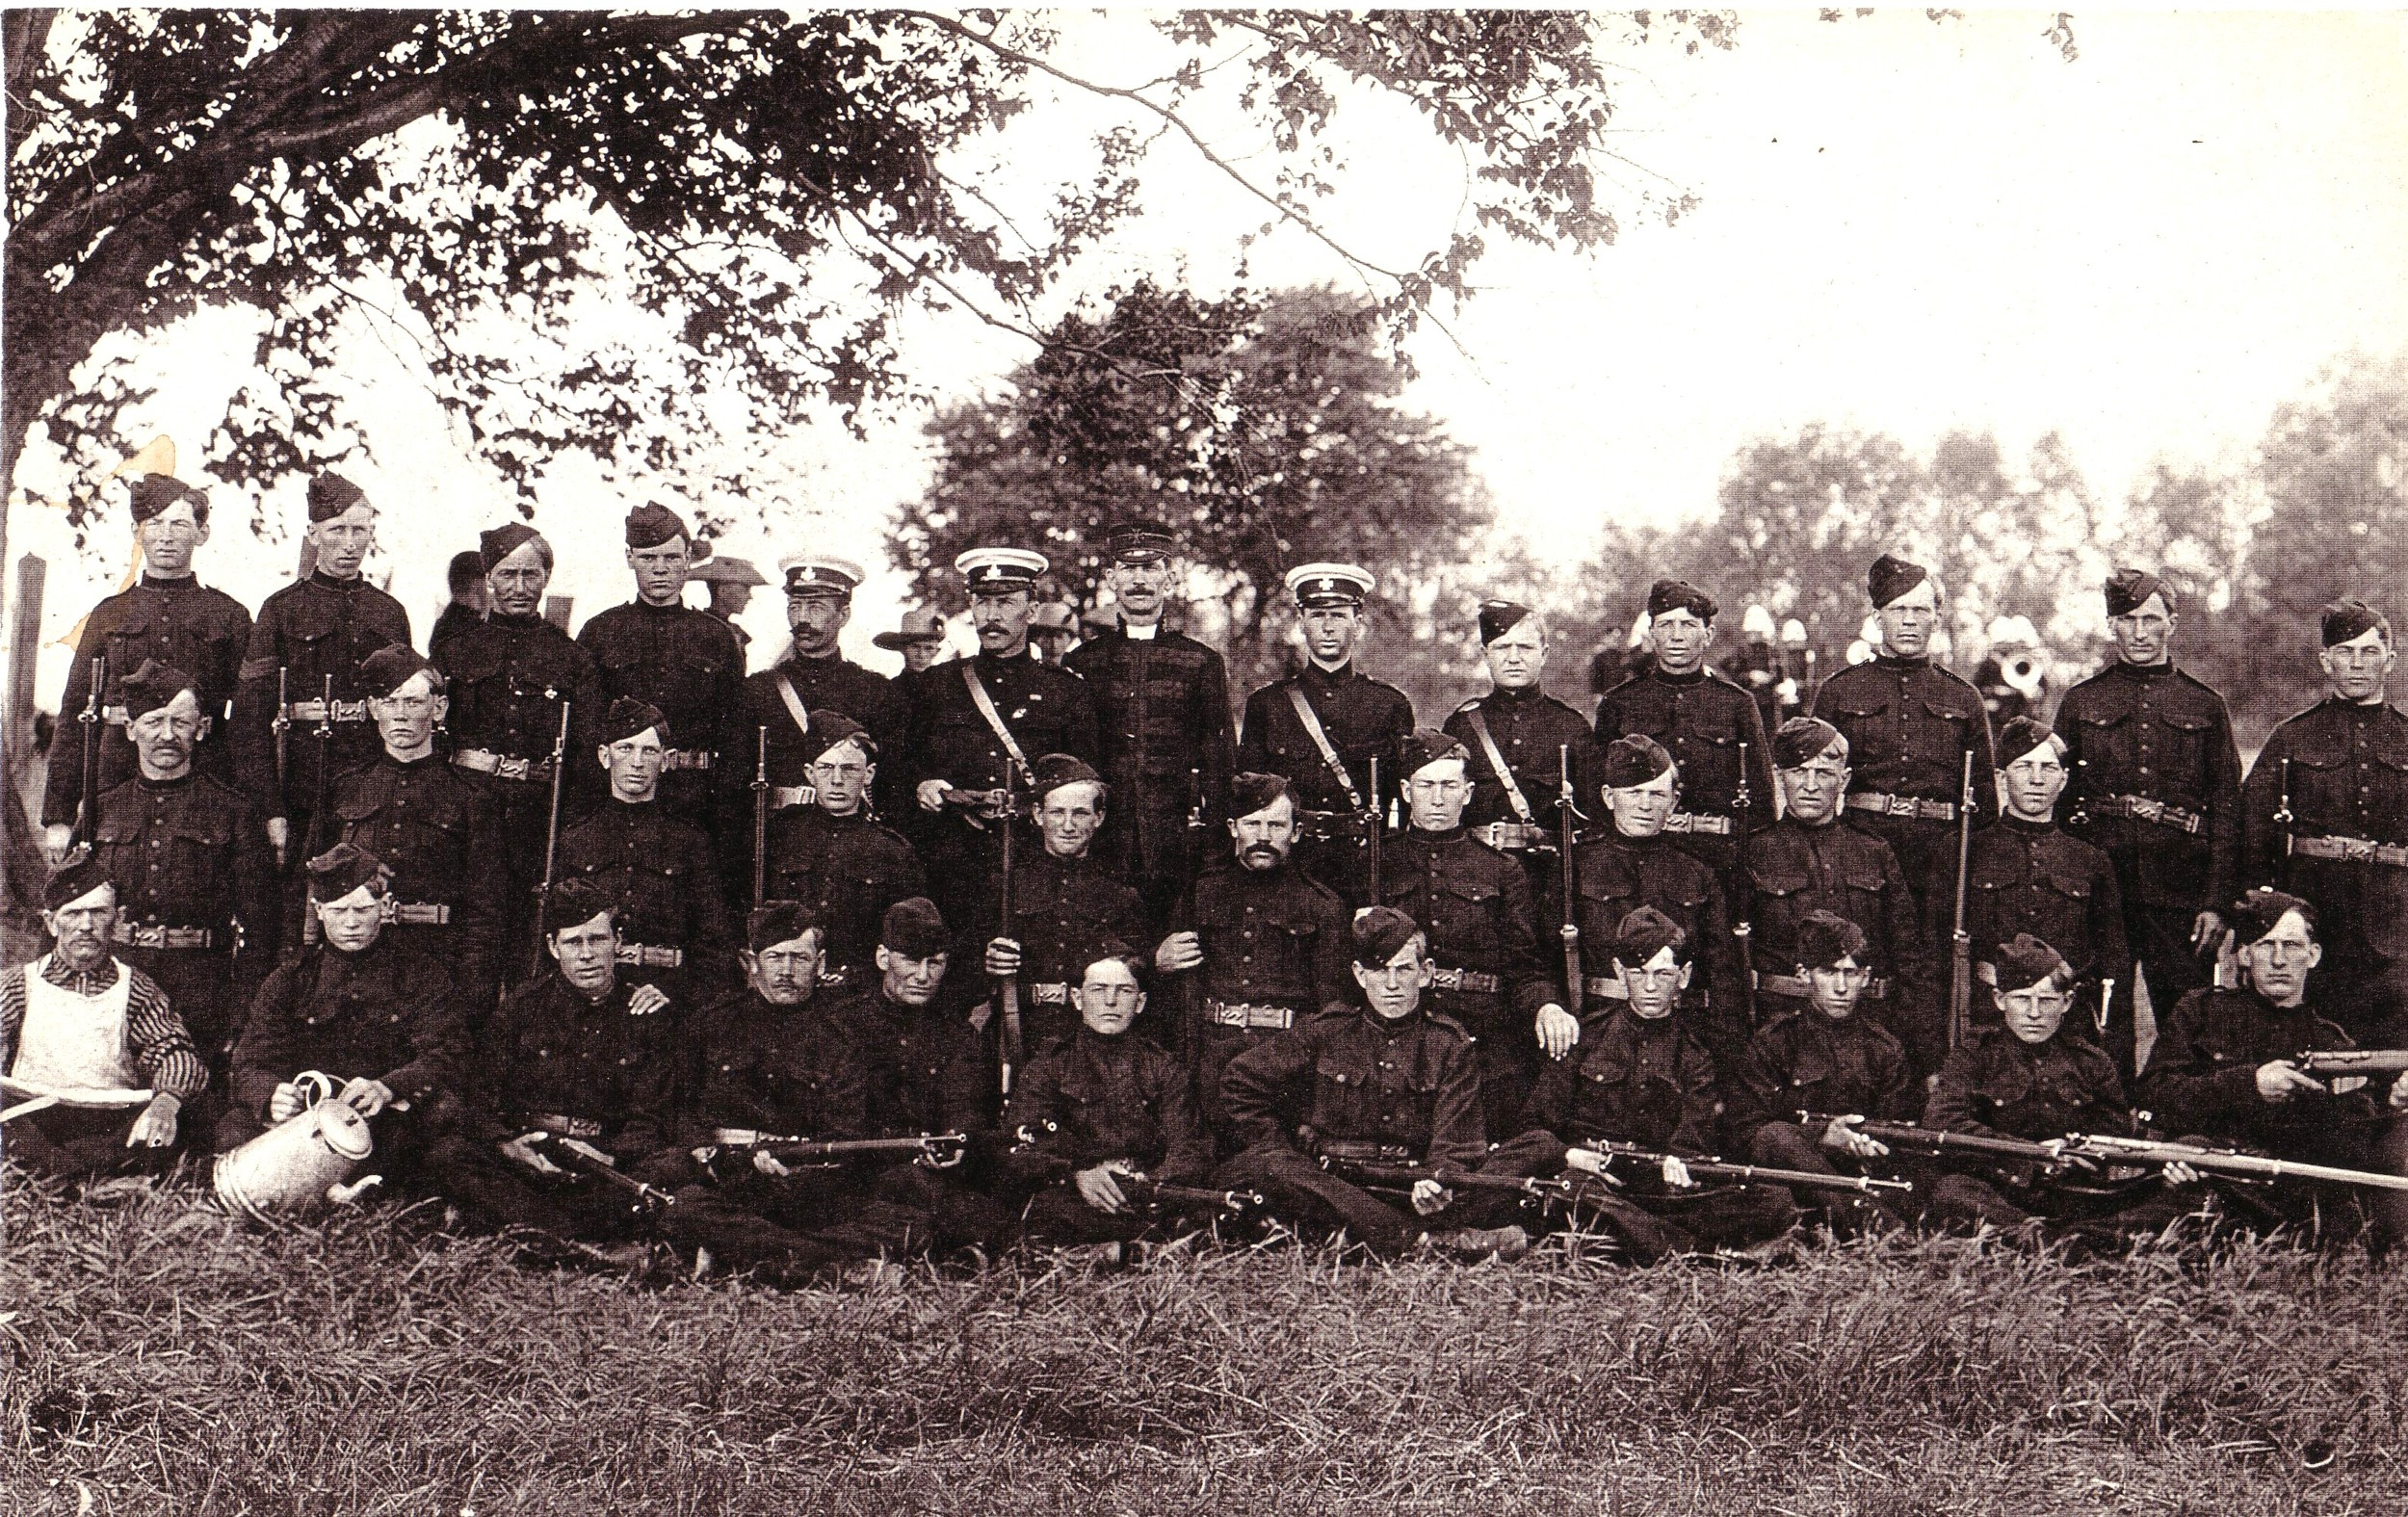 Wartime - c.1914 Charles Archibald Bleecker back row 5th from left